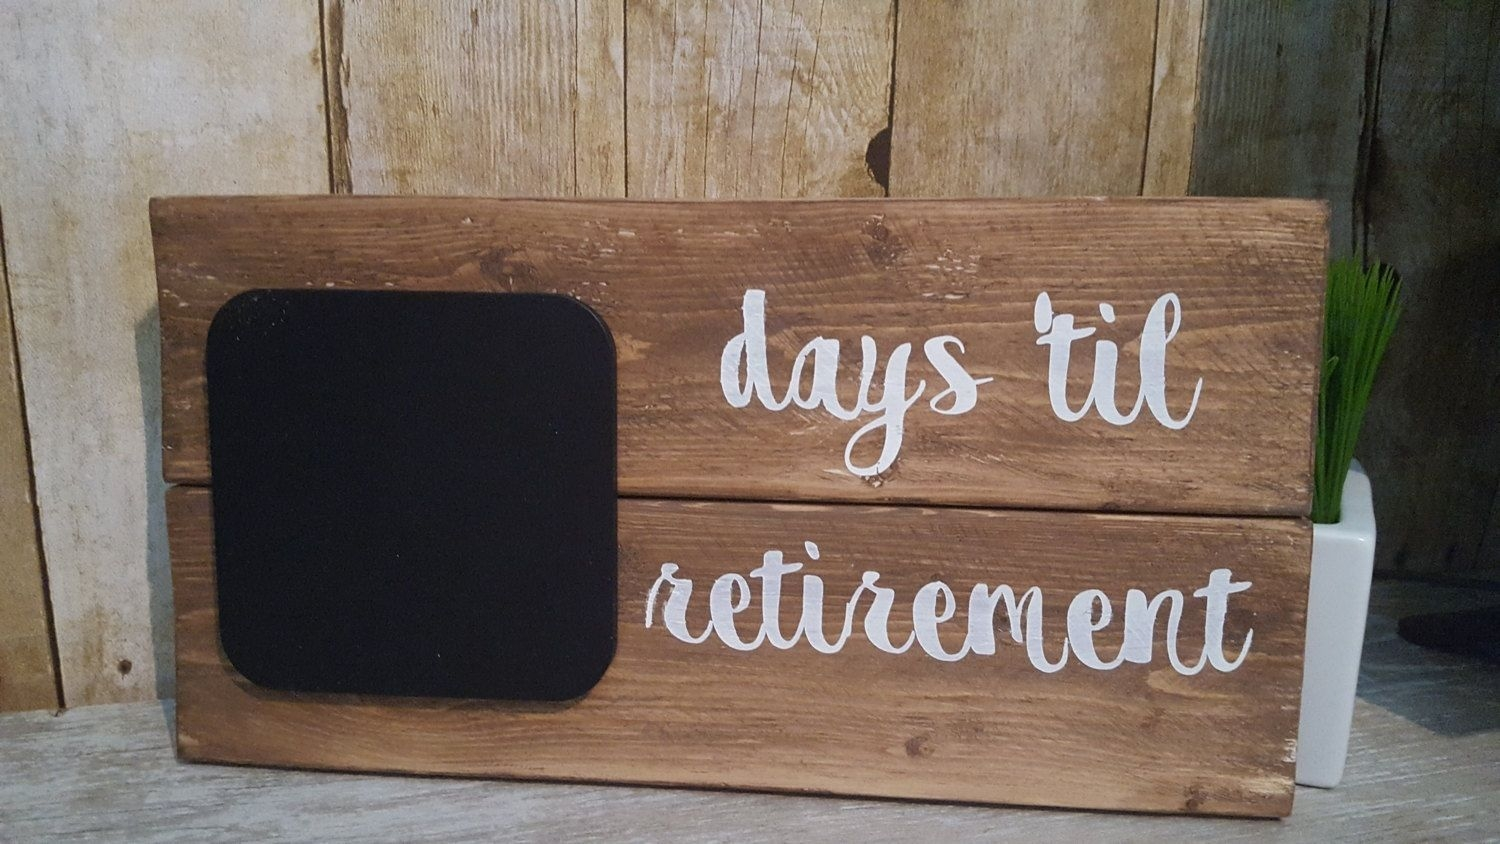 free retirement screensavers (page 1) line 17qq